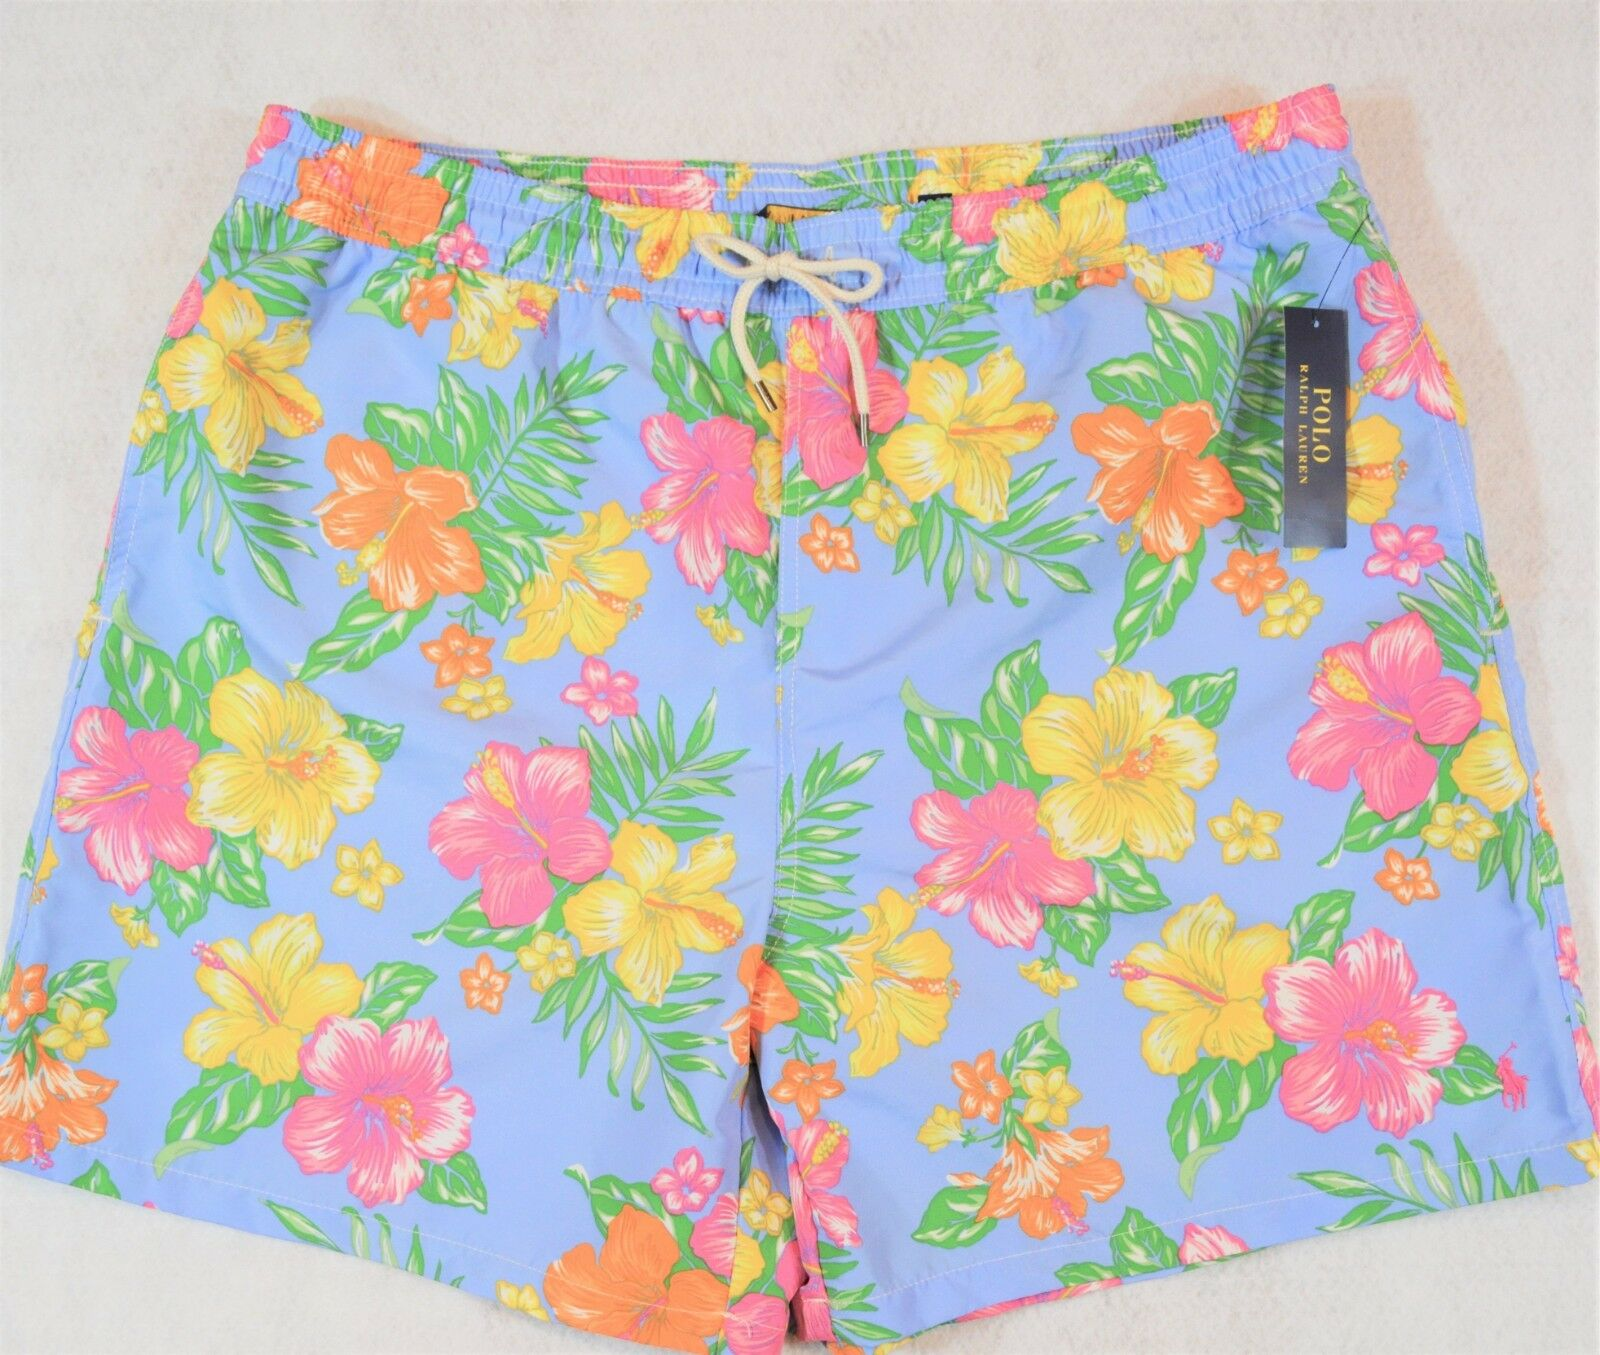 Polo Ralph Lauren Swim Trunks Board Shorts bluee Floral Size 2XB 2X NWT